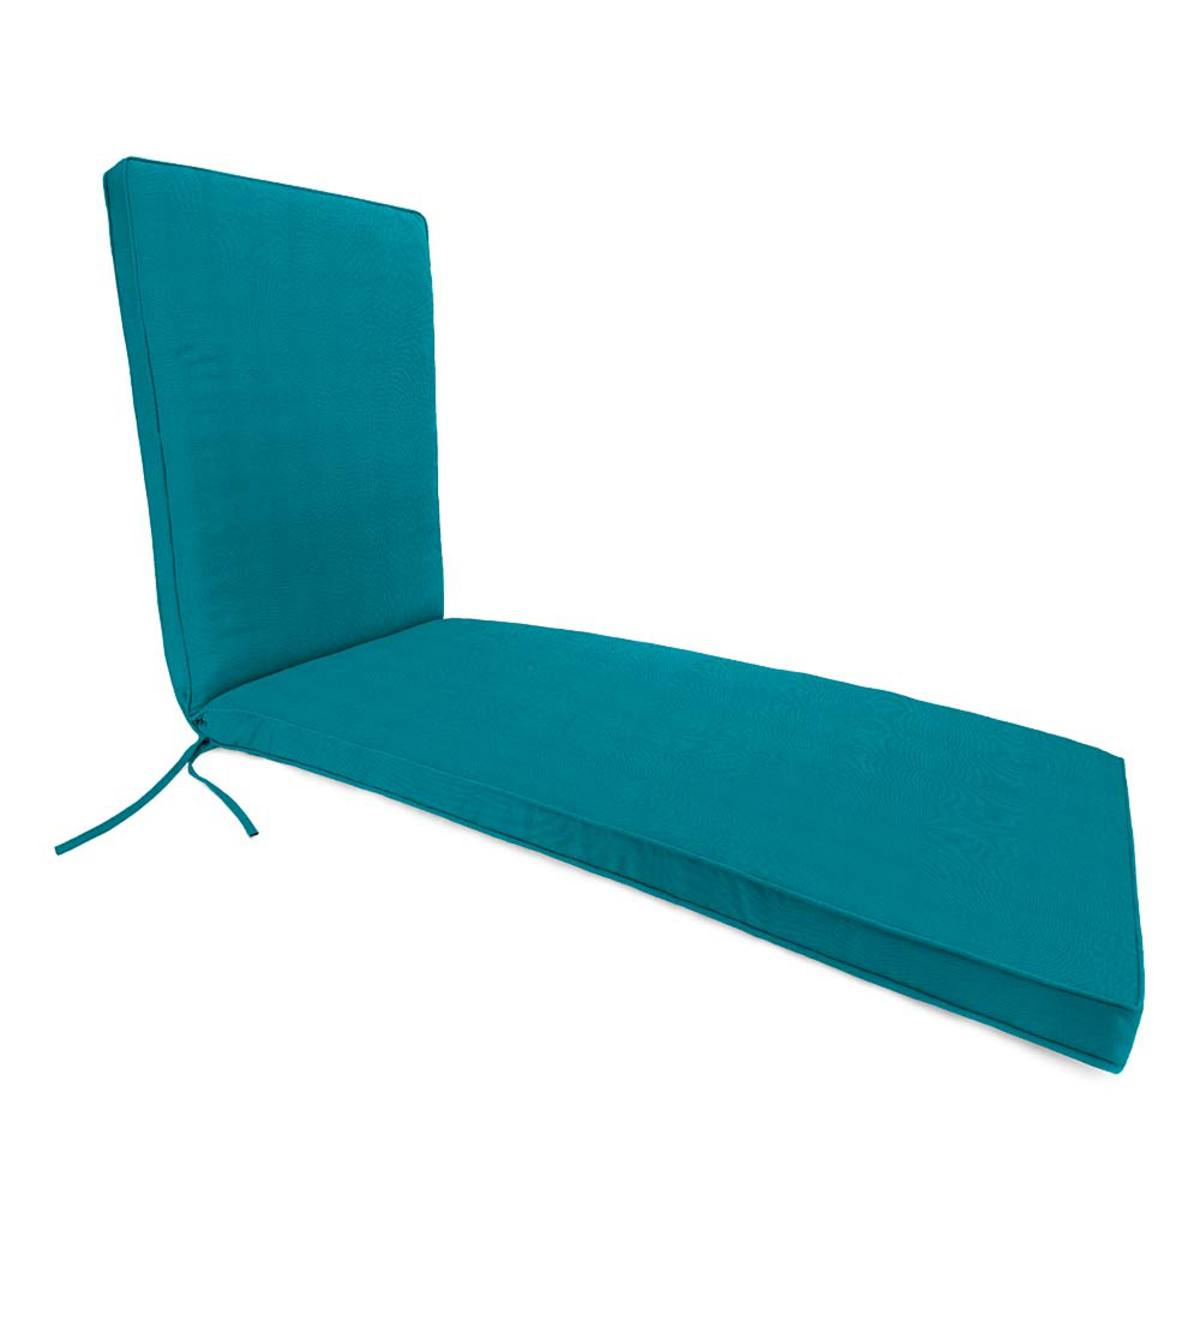 Deluxe Sunbrella™ Chaise Cushion With Ties 74 1/4u201dx 23